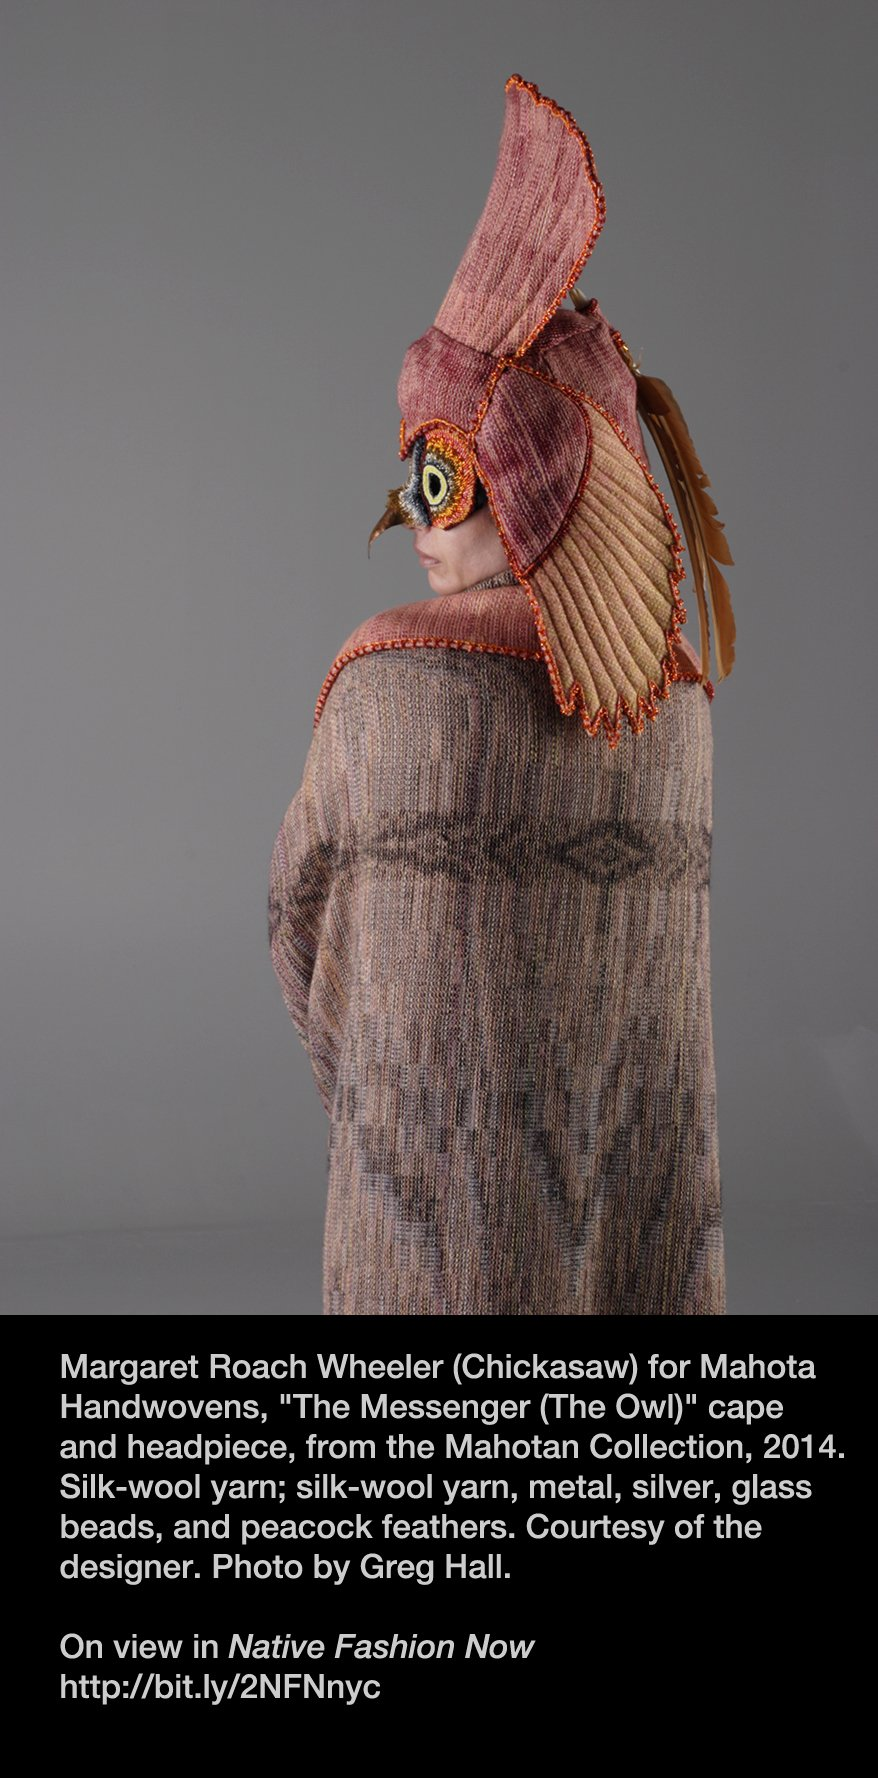 Our #Superb_Owl pick is by #textileartist Margaret Roach Wheeler (@ChickasawNation). On view in #NativeFashionNow starting Feb 17. #NYFW2017 https://t.co/0pVPm9kiPj